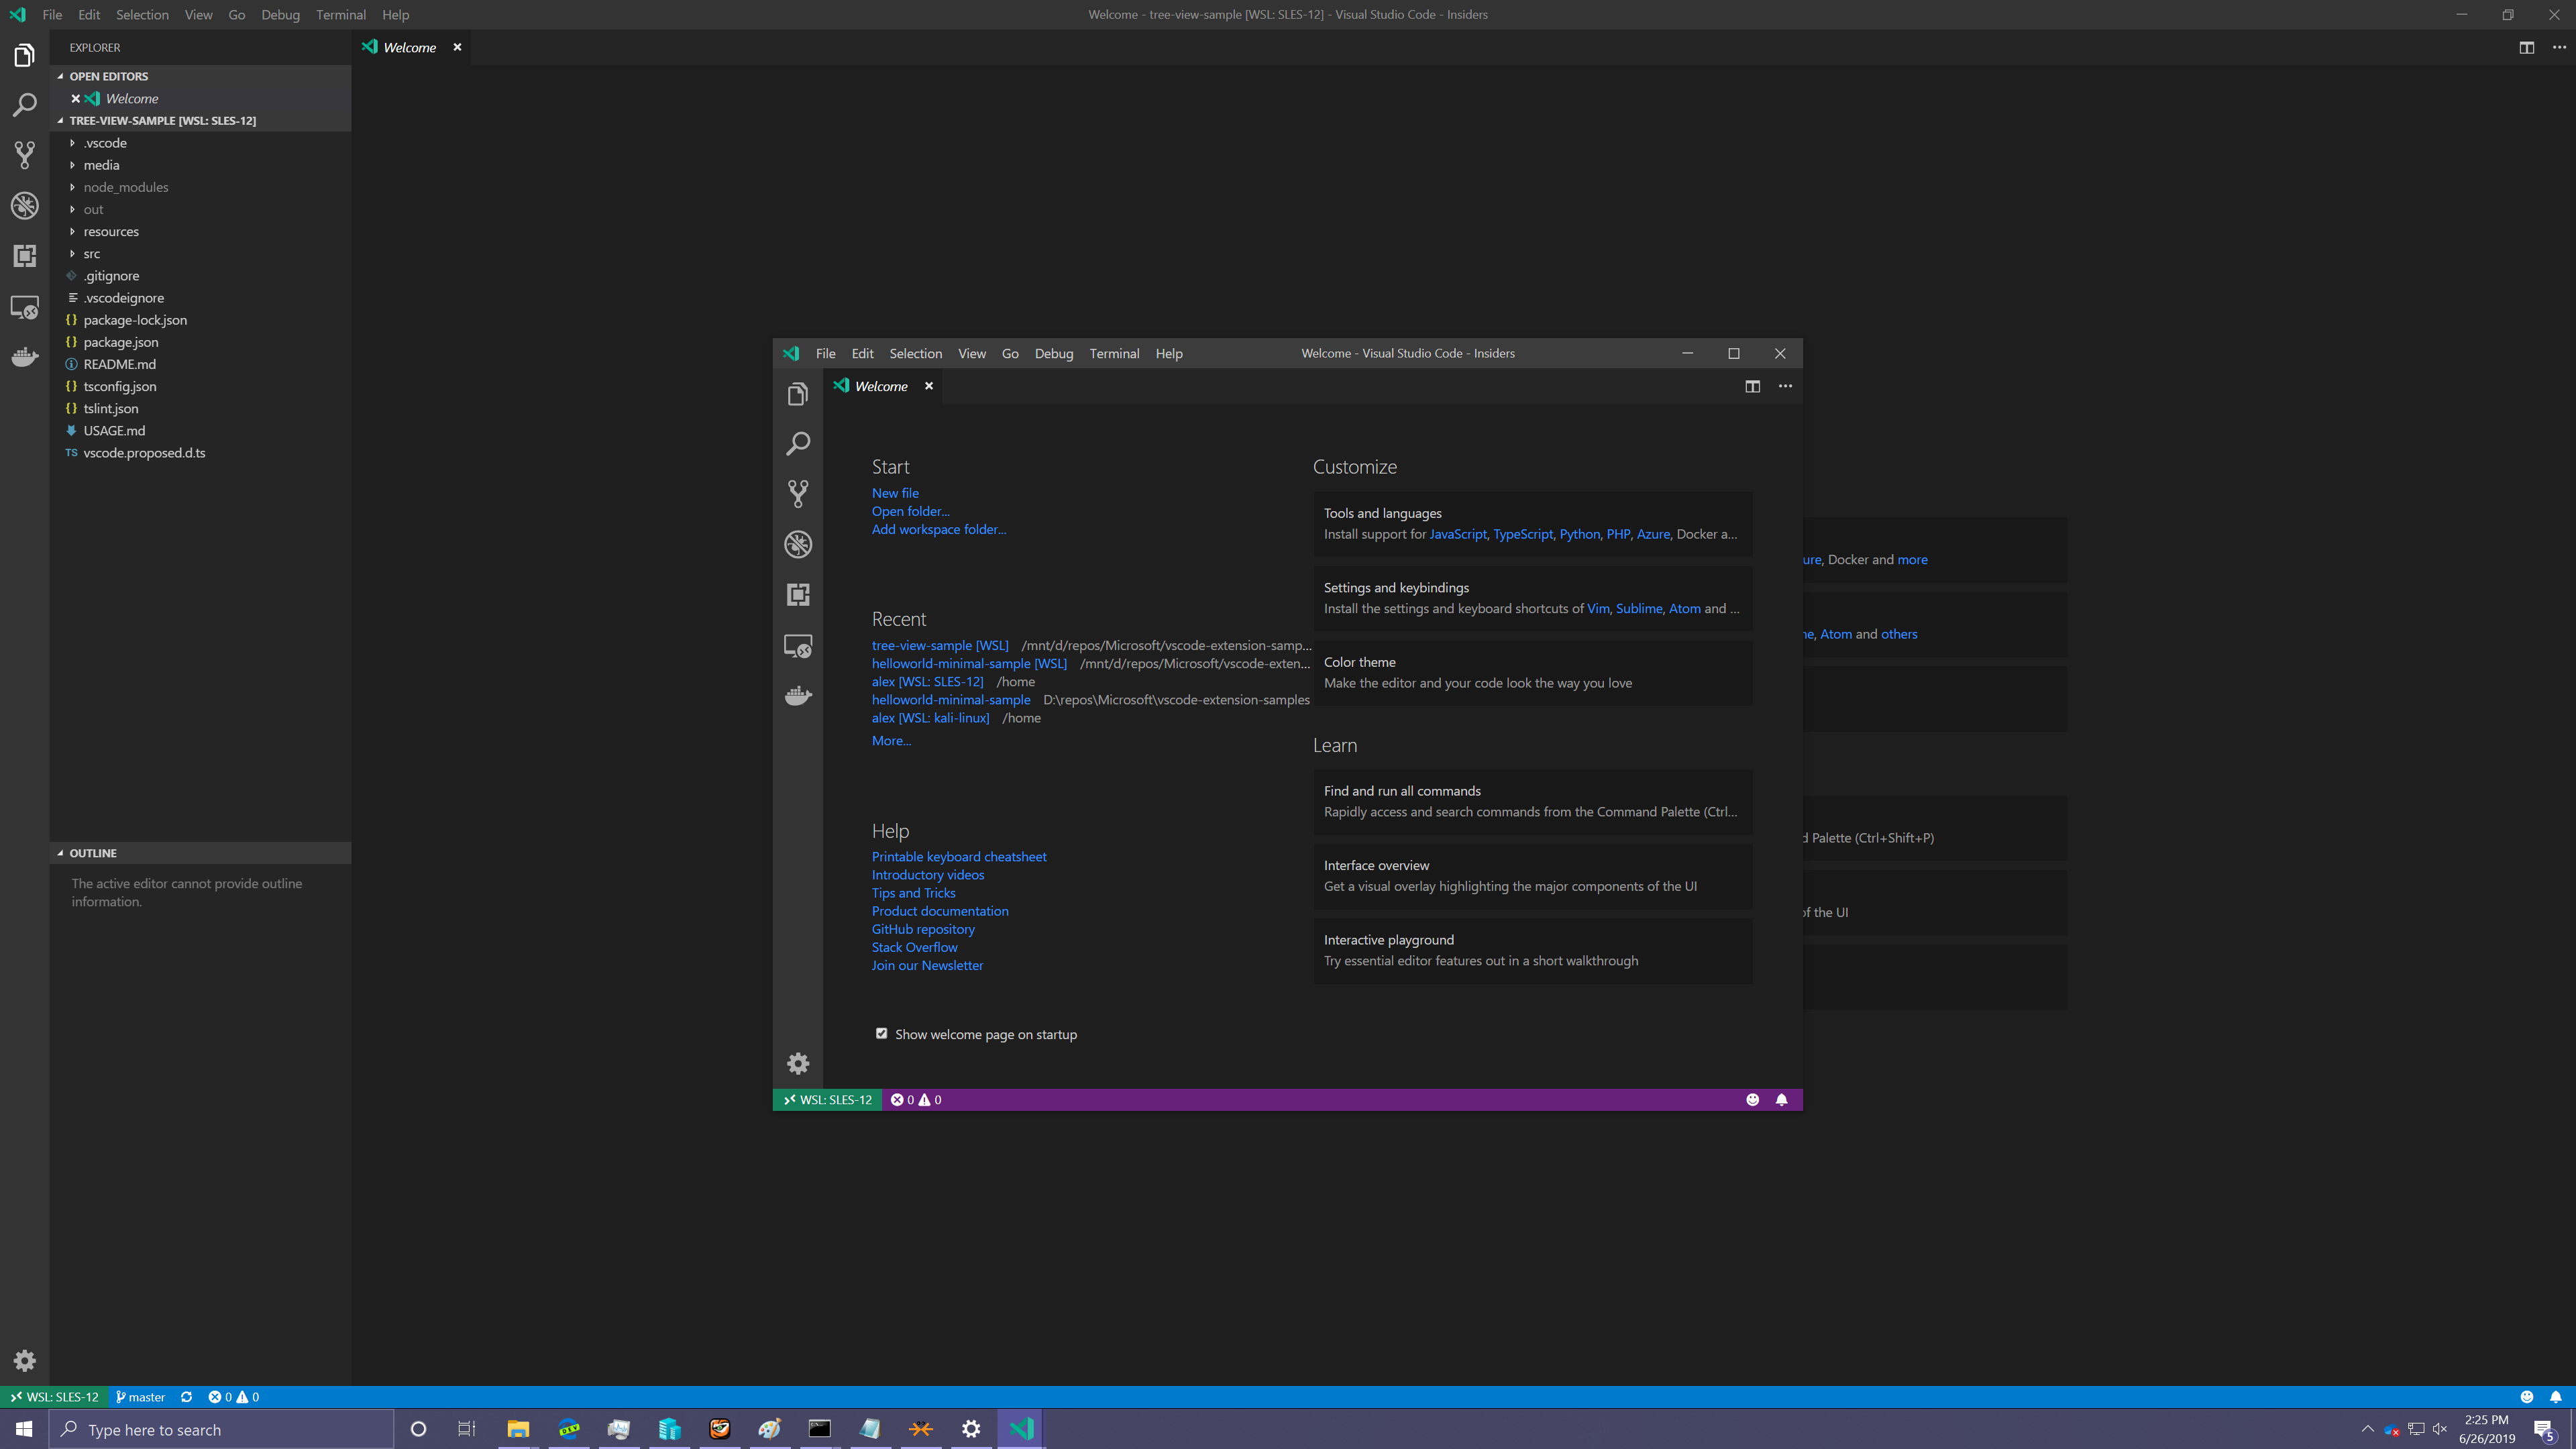 WSL windows started with code-insiders   have generic labels